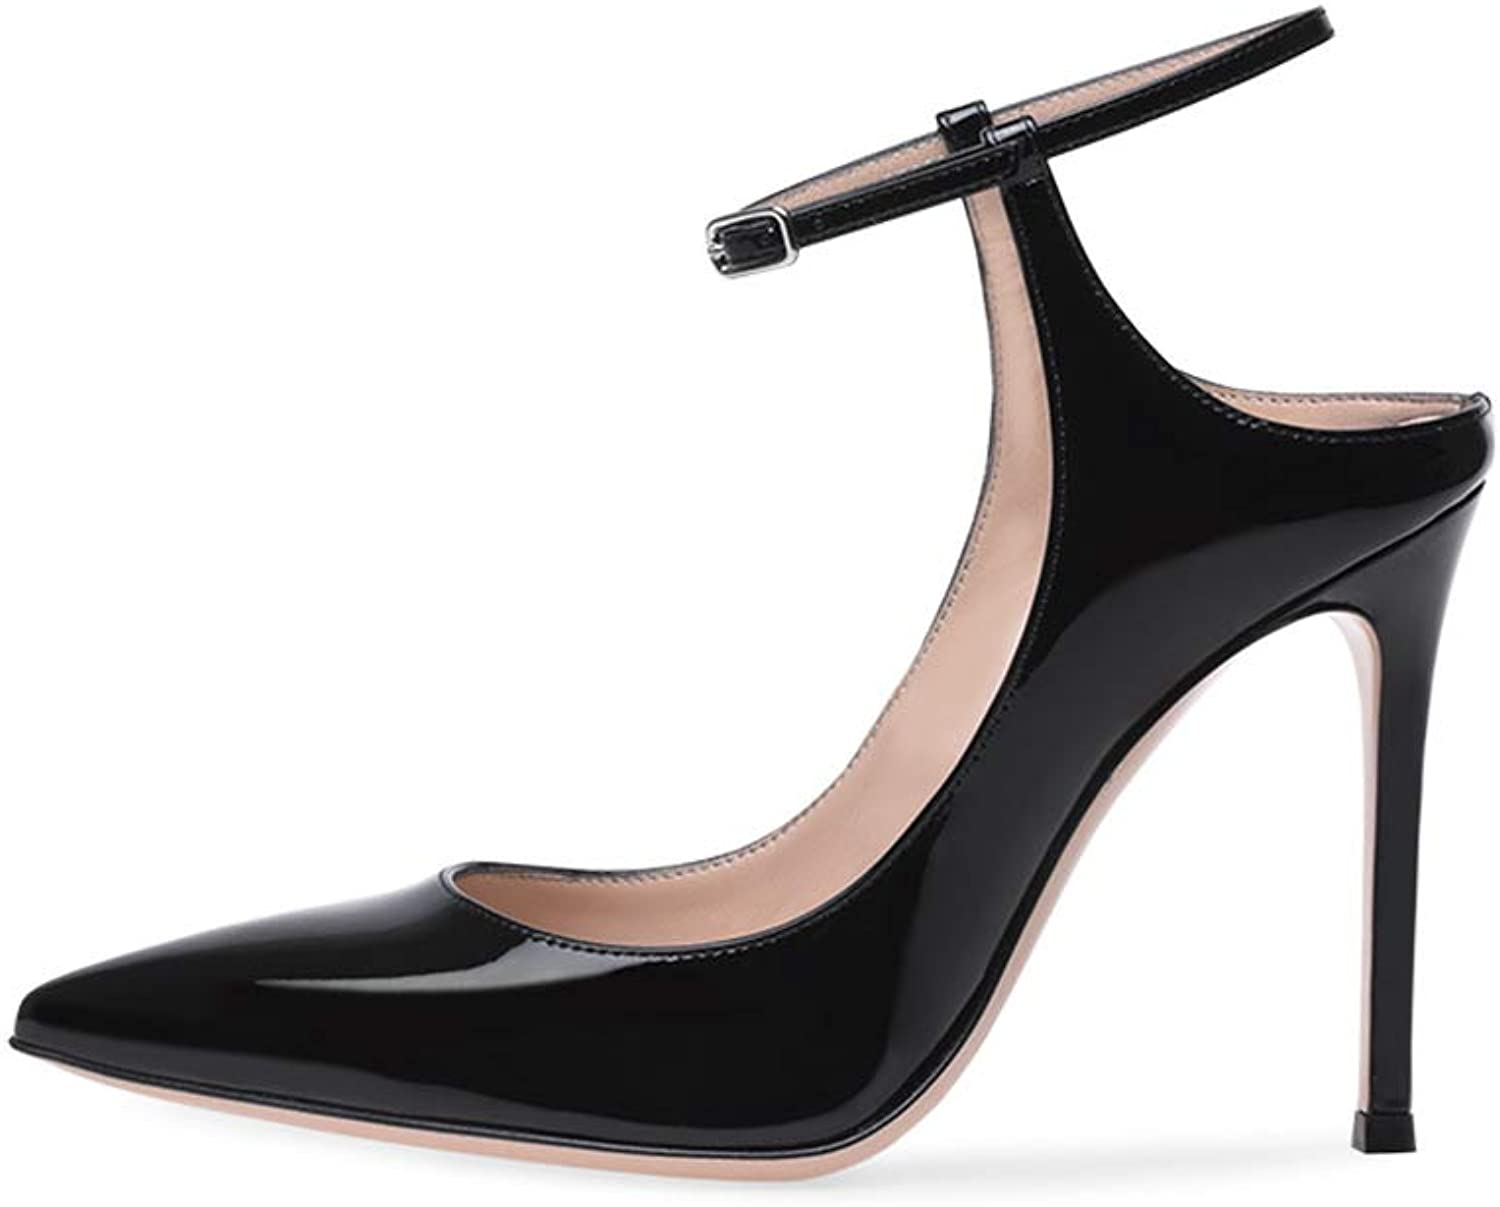 Ladies High Heel Court shoes Black Pumps for Women Ankle Straps Buckle Formal Evening Wedding Party